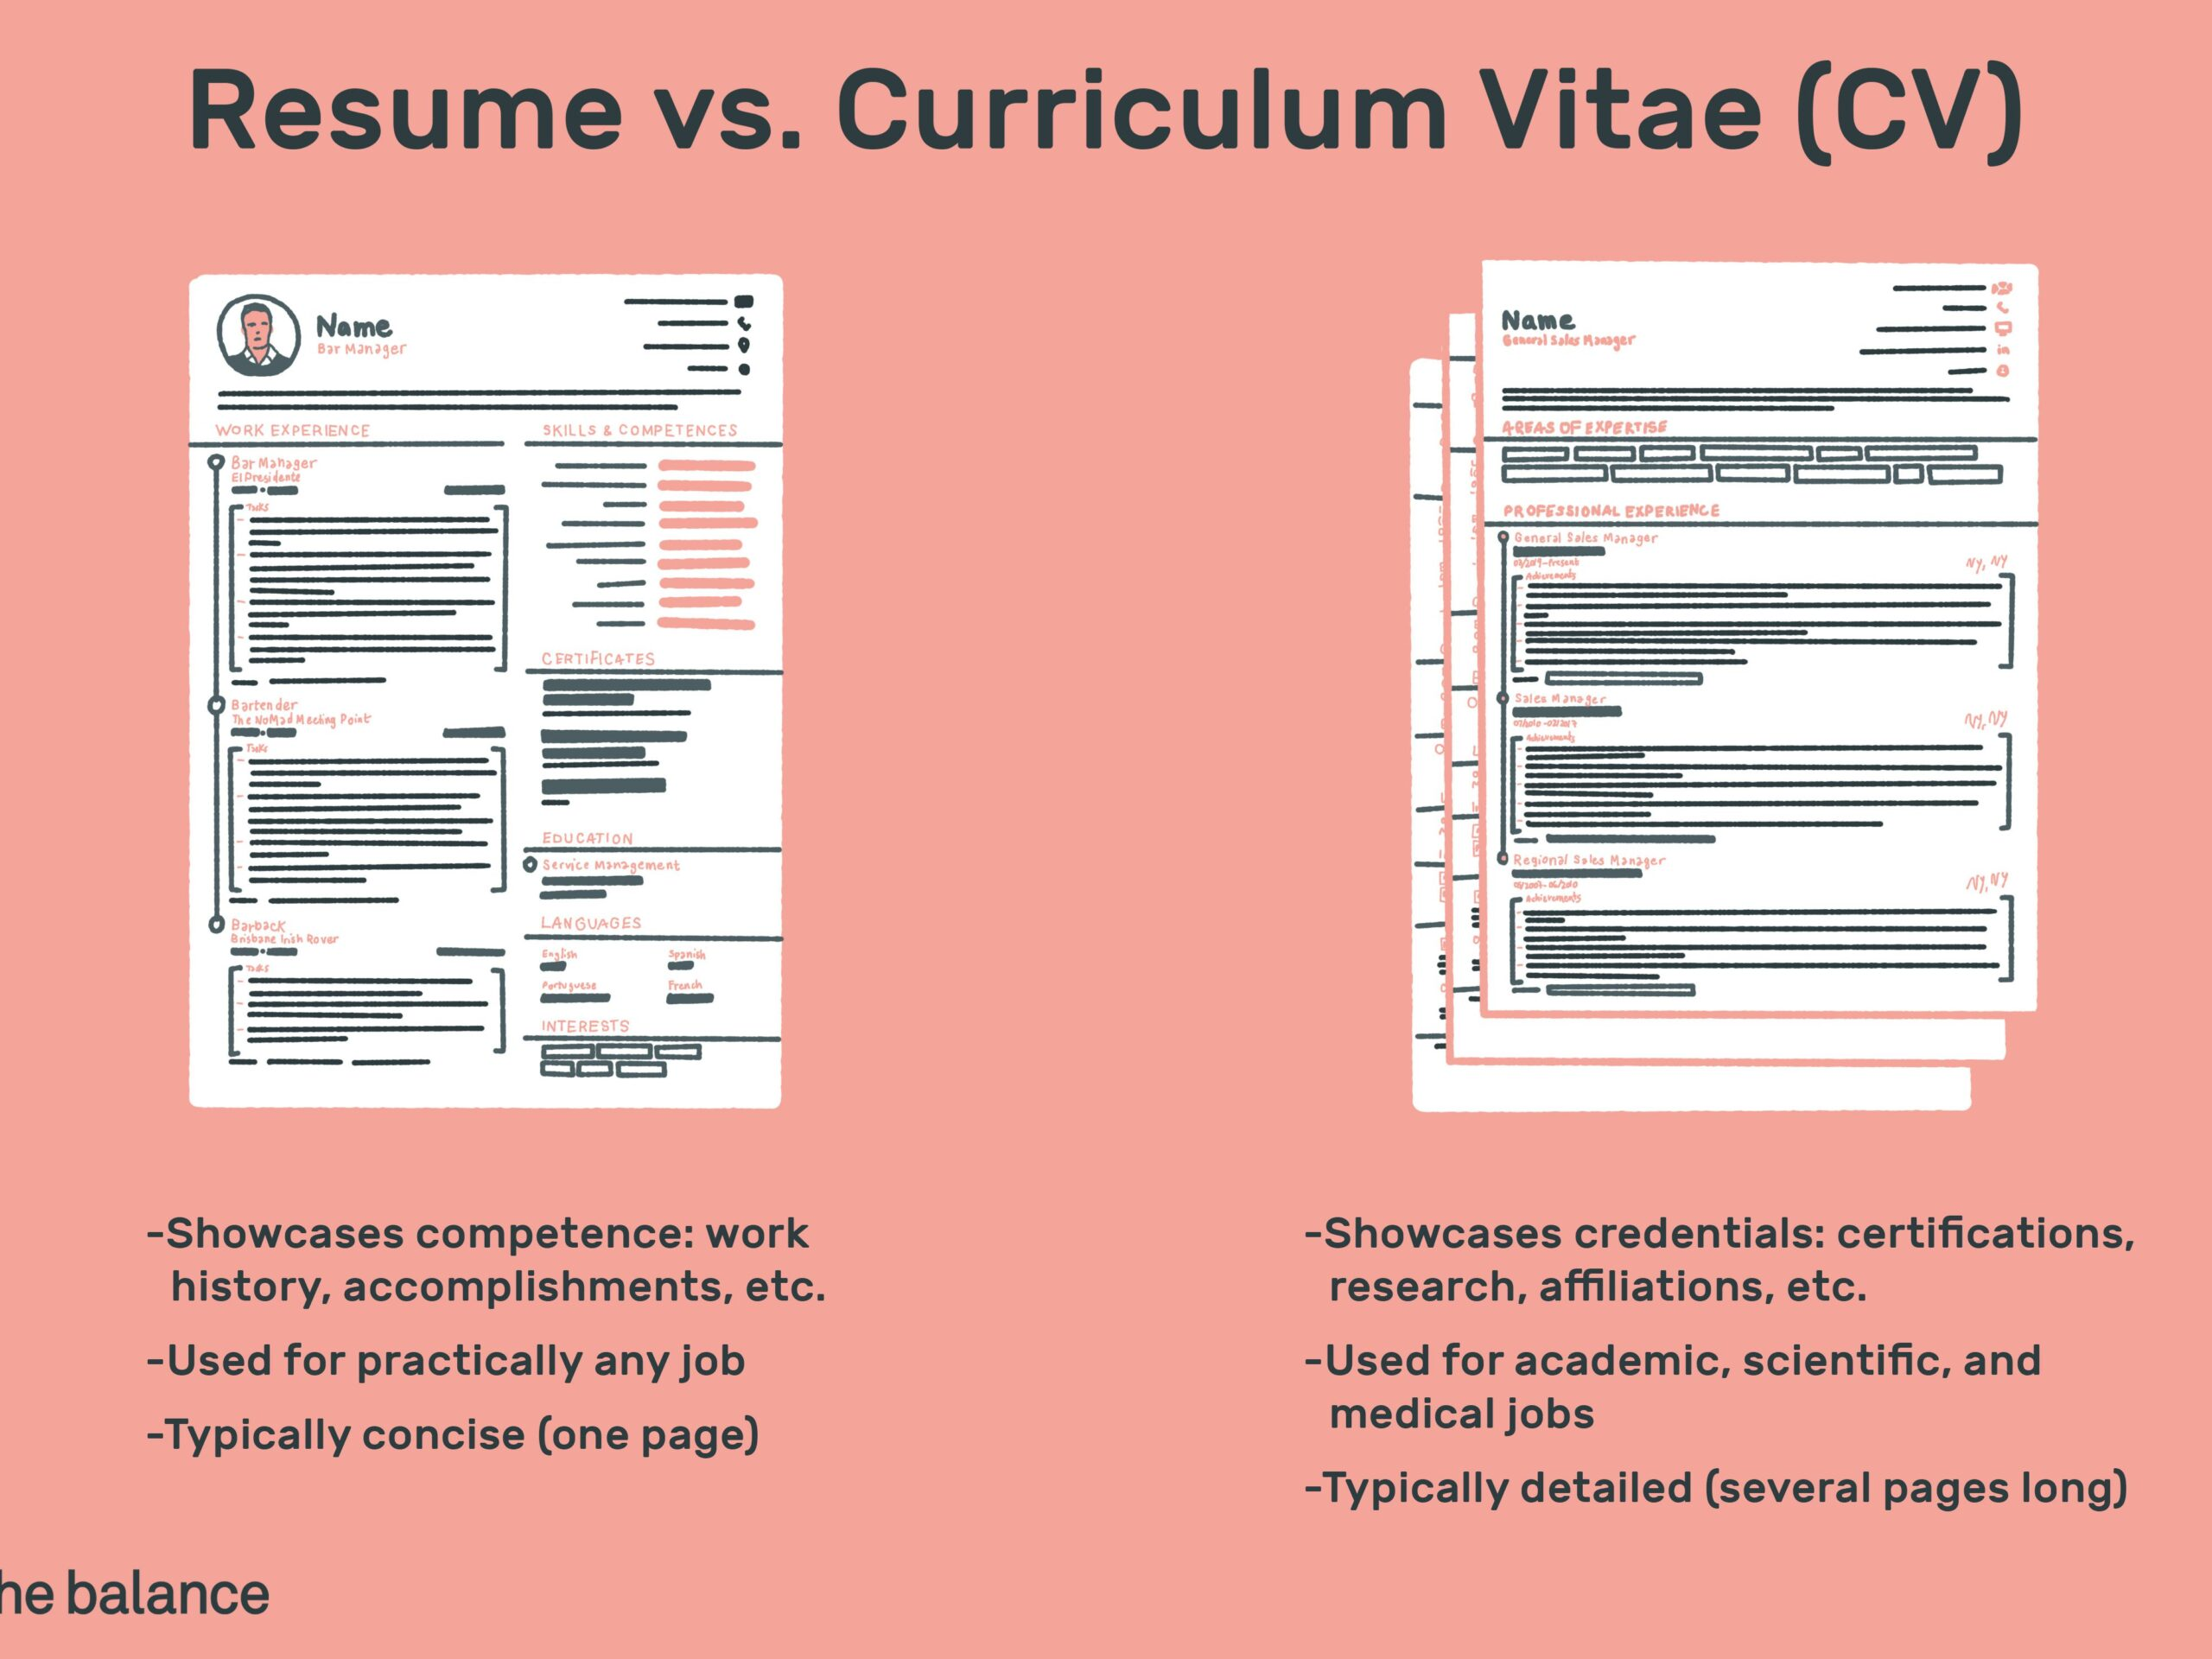 the difference between resume and curriculum vitae biodata cv vs final brief template Resume Difference Between Curriculum Vitae And Resume And Biodata